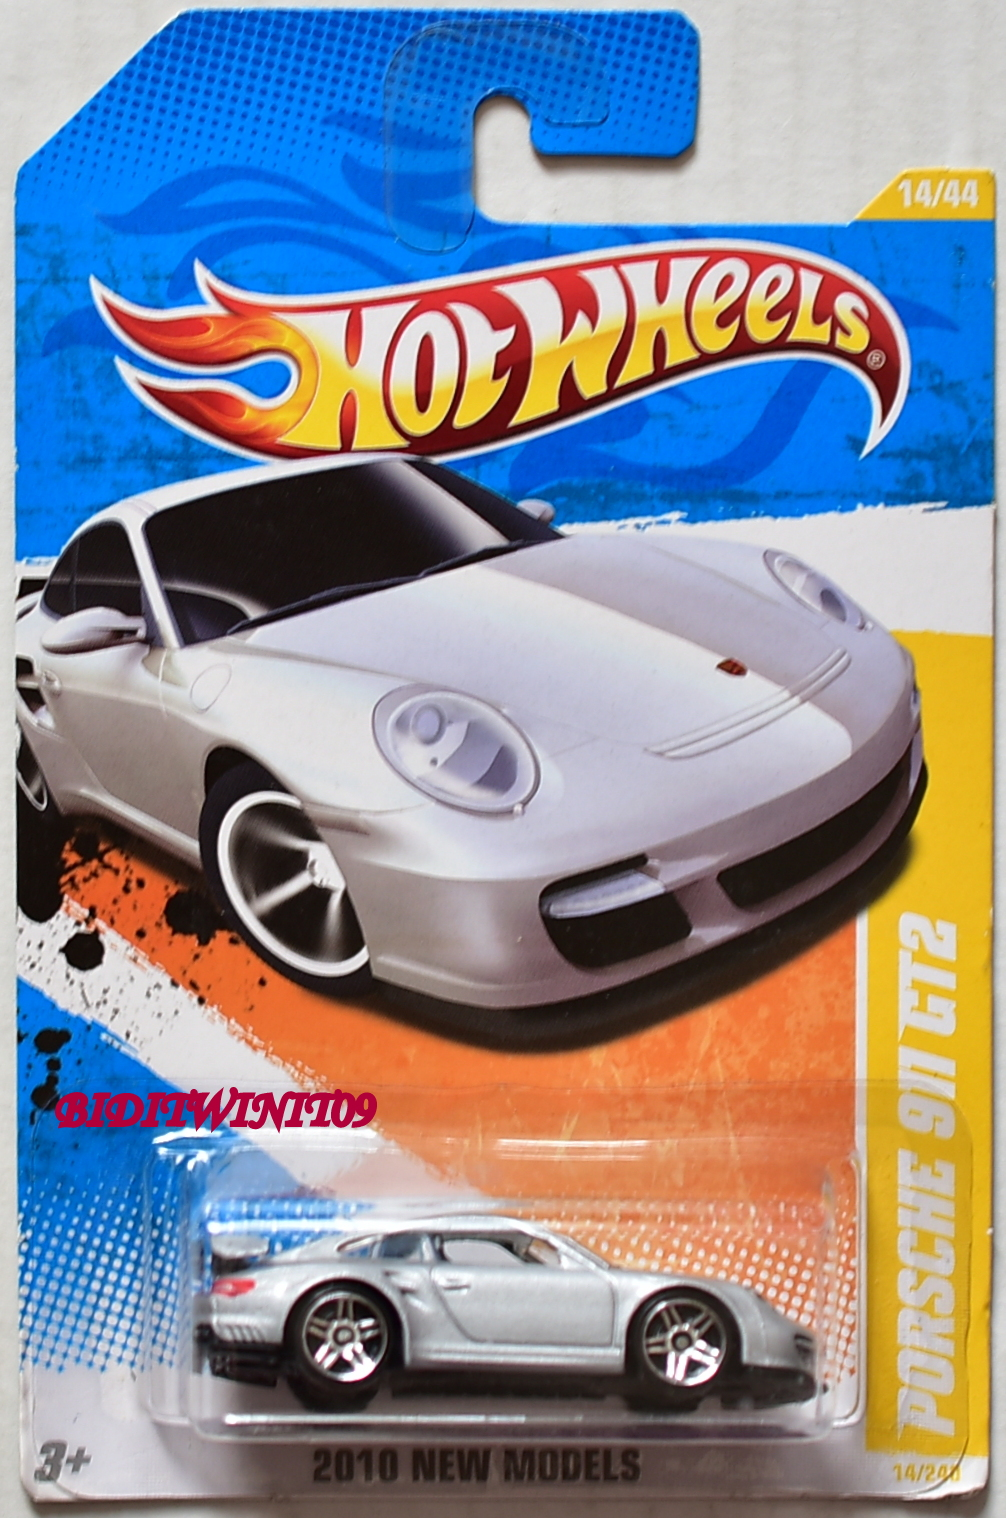 HOT WHEELS 2010 NEW MODELS PORSCHE 911 GT2 #14/44 SILVER